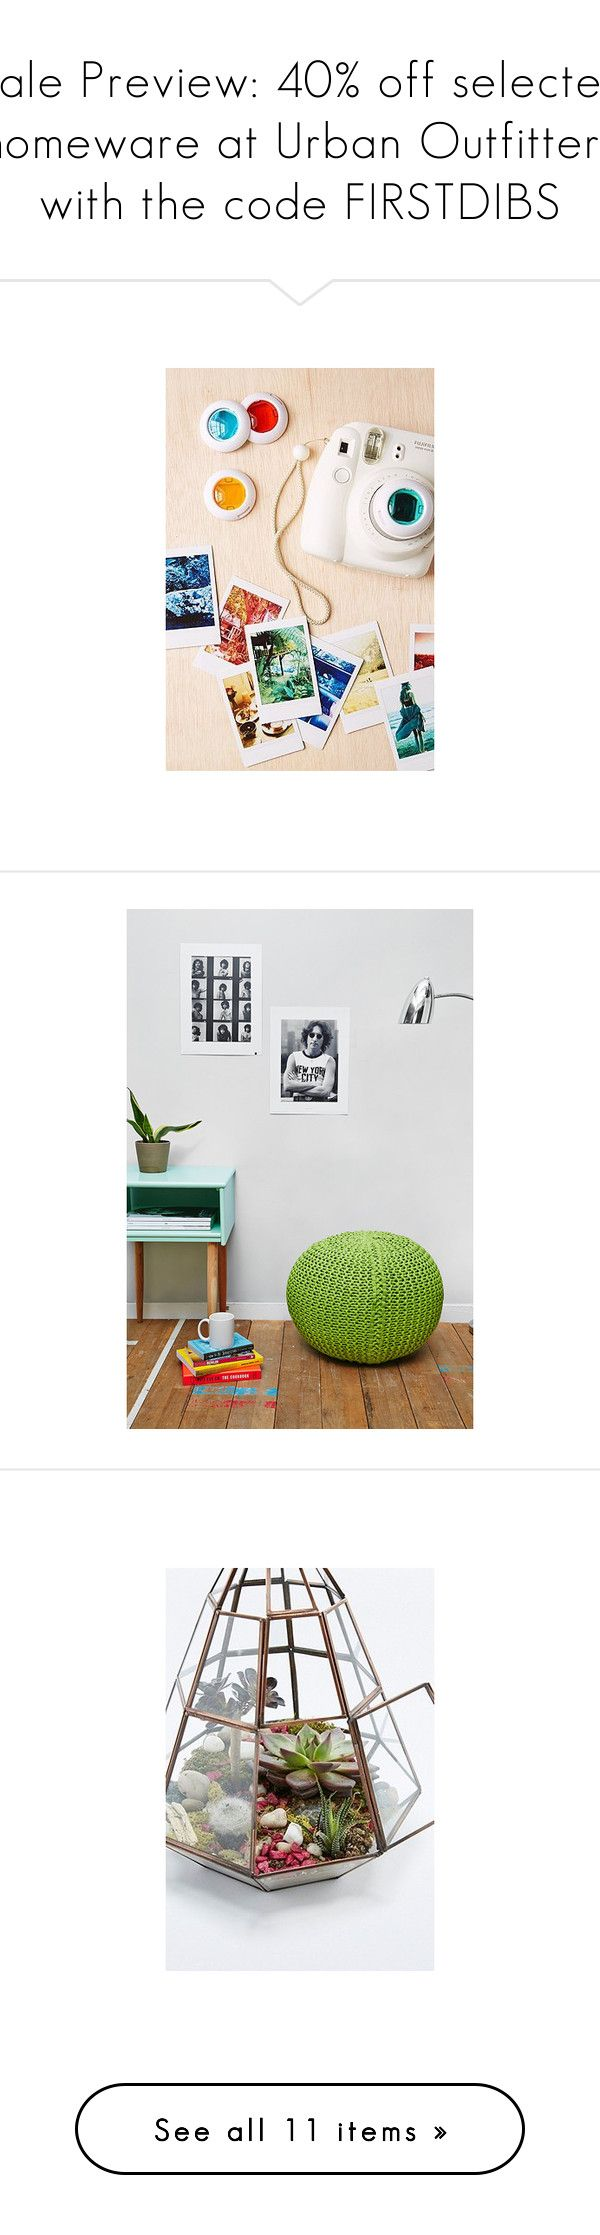 """Sale Preview: 40% off selected homeware at Urban Outfitters with the code FIRSTDIBS"" by urbanoutfitterseurope ❤ liked on Polyvore featuring home, furniture, chairs, lime, lime green bean bag, lime green beanbag chair, lime green furniture, minimalist furniture, green furniture and home decor"